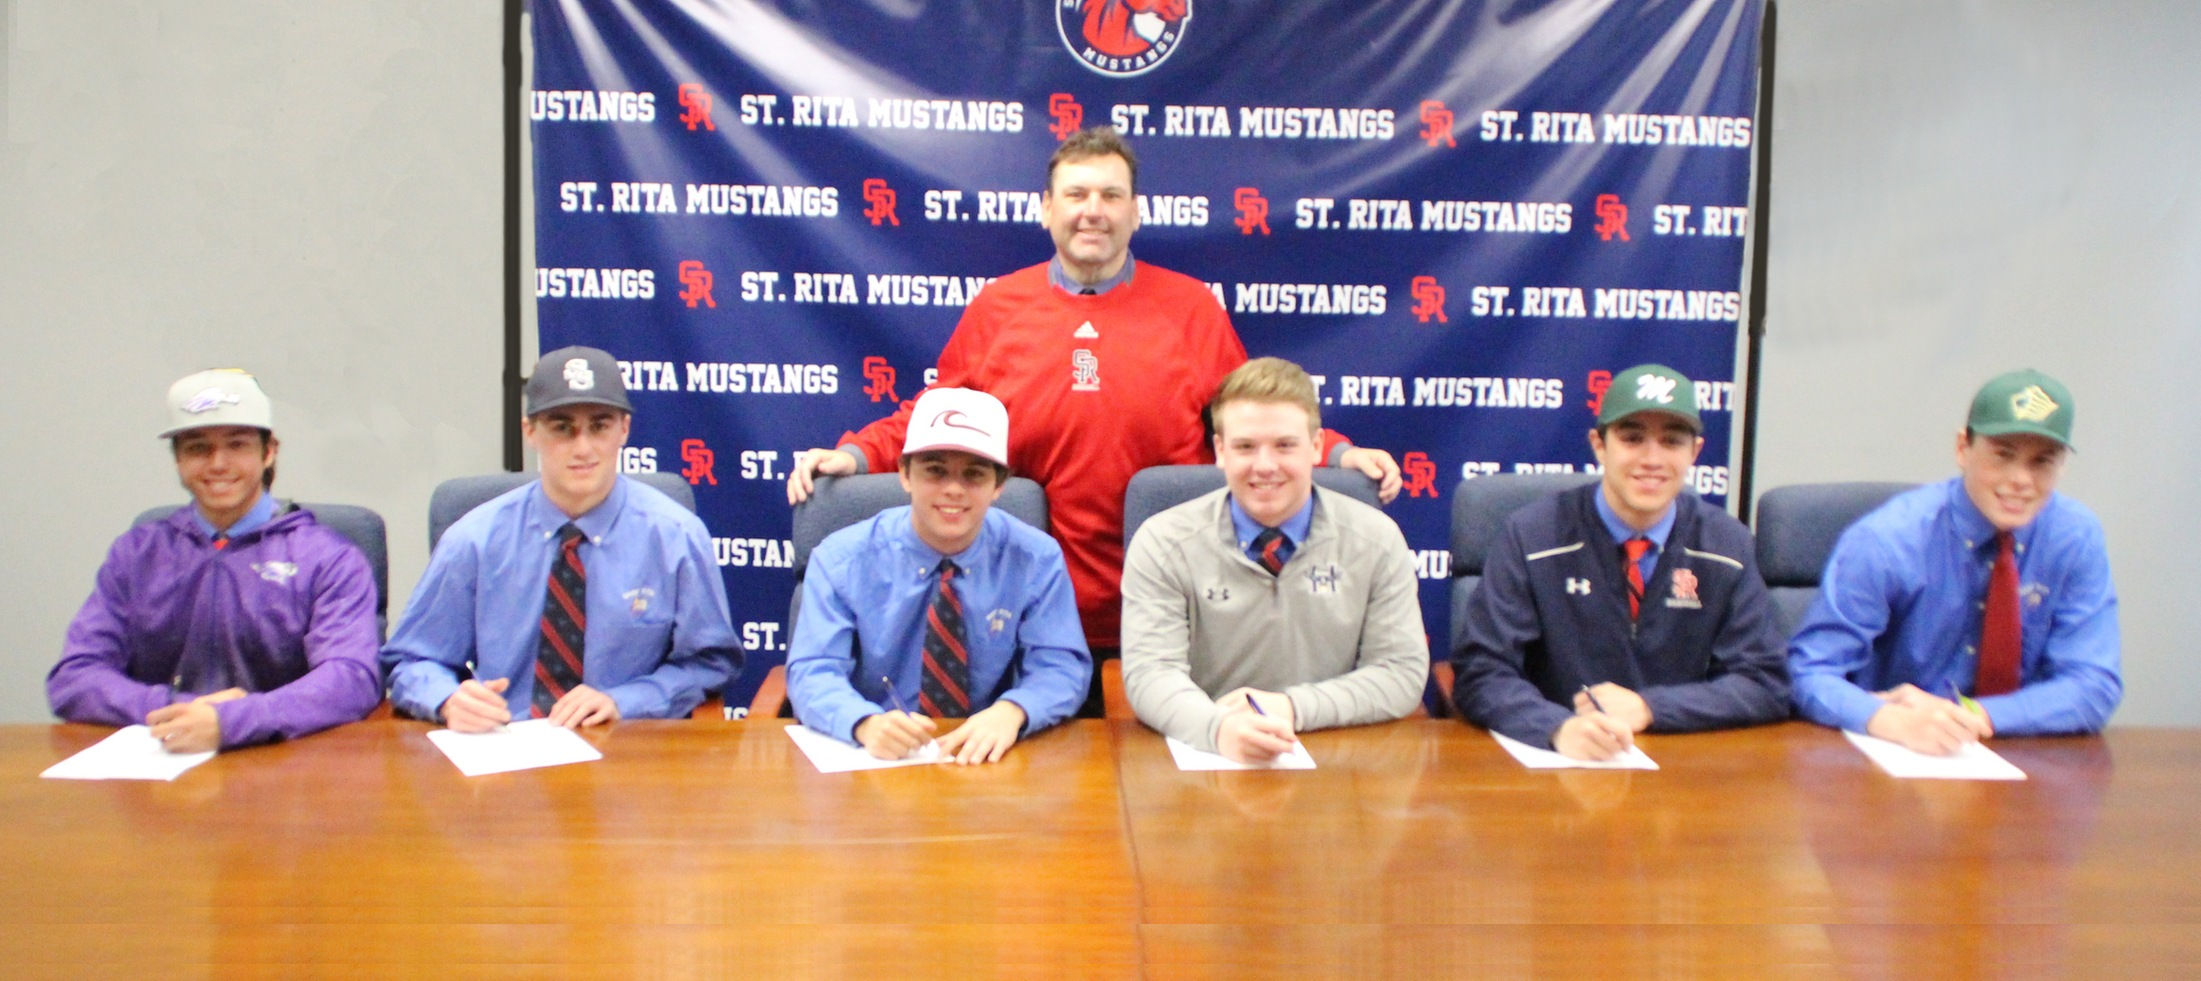 6 SENIOR BASEBALL PLAYERS SIGN LETTERS OF INTENT